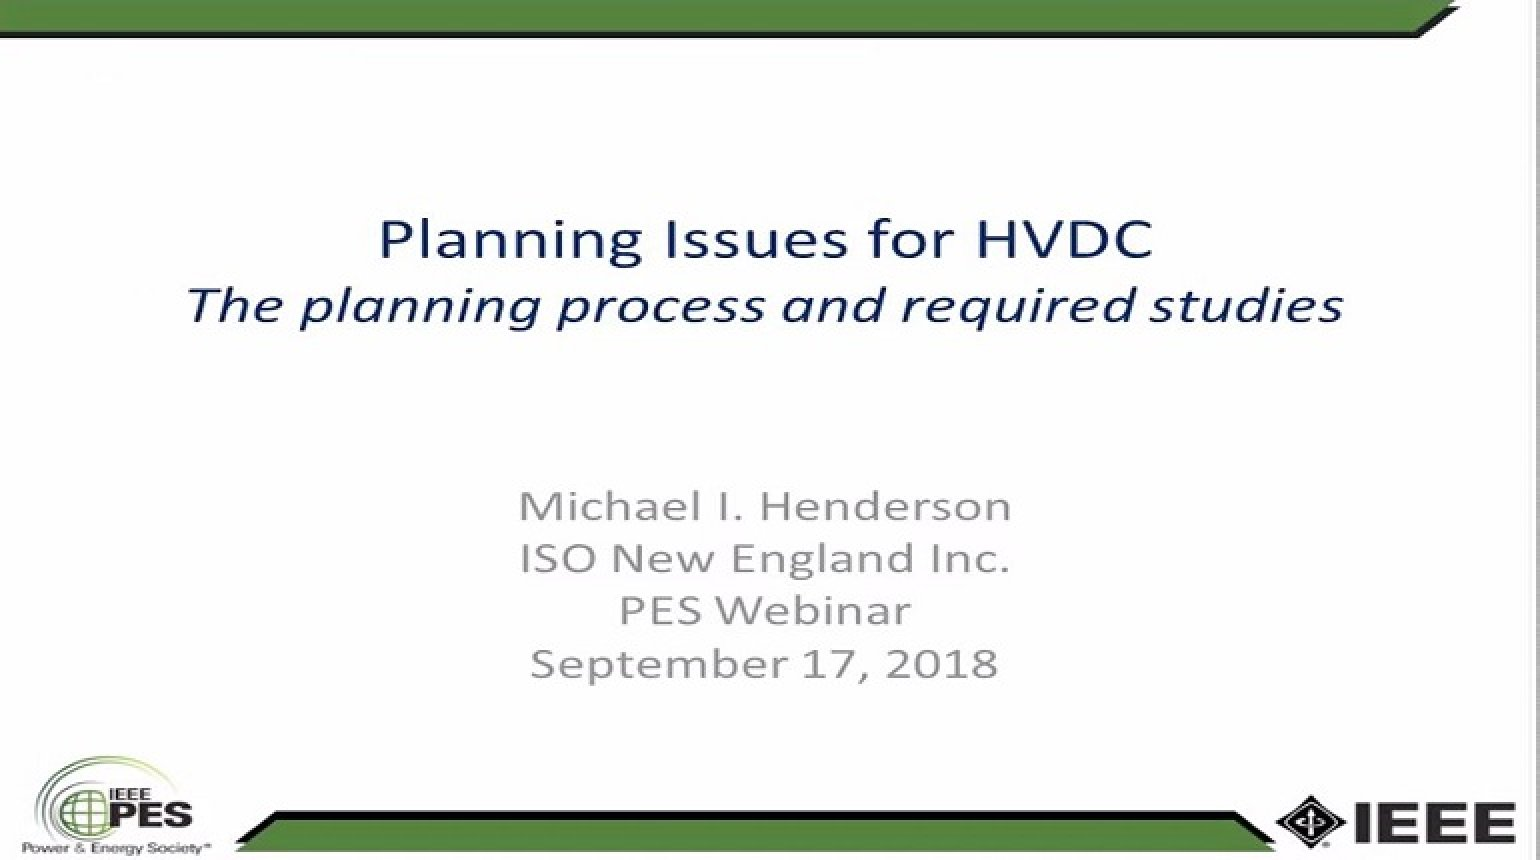 Planning Issues for HVDC